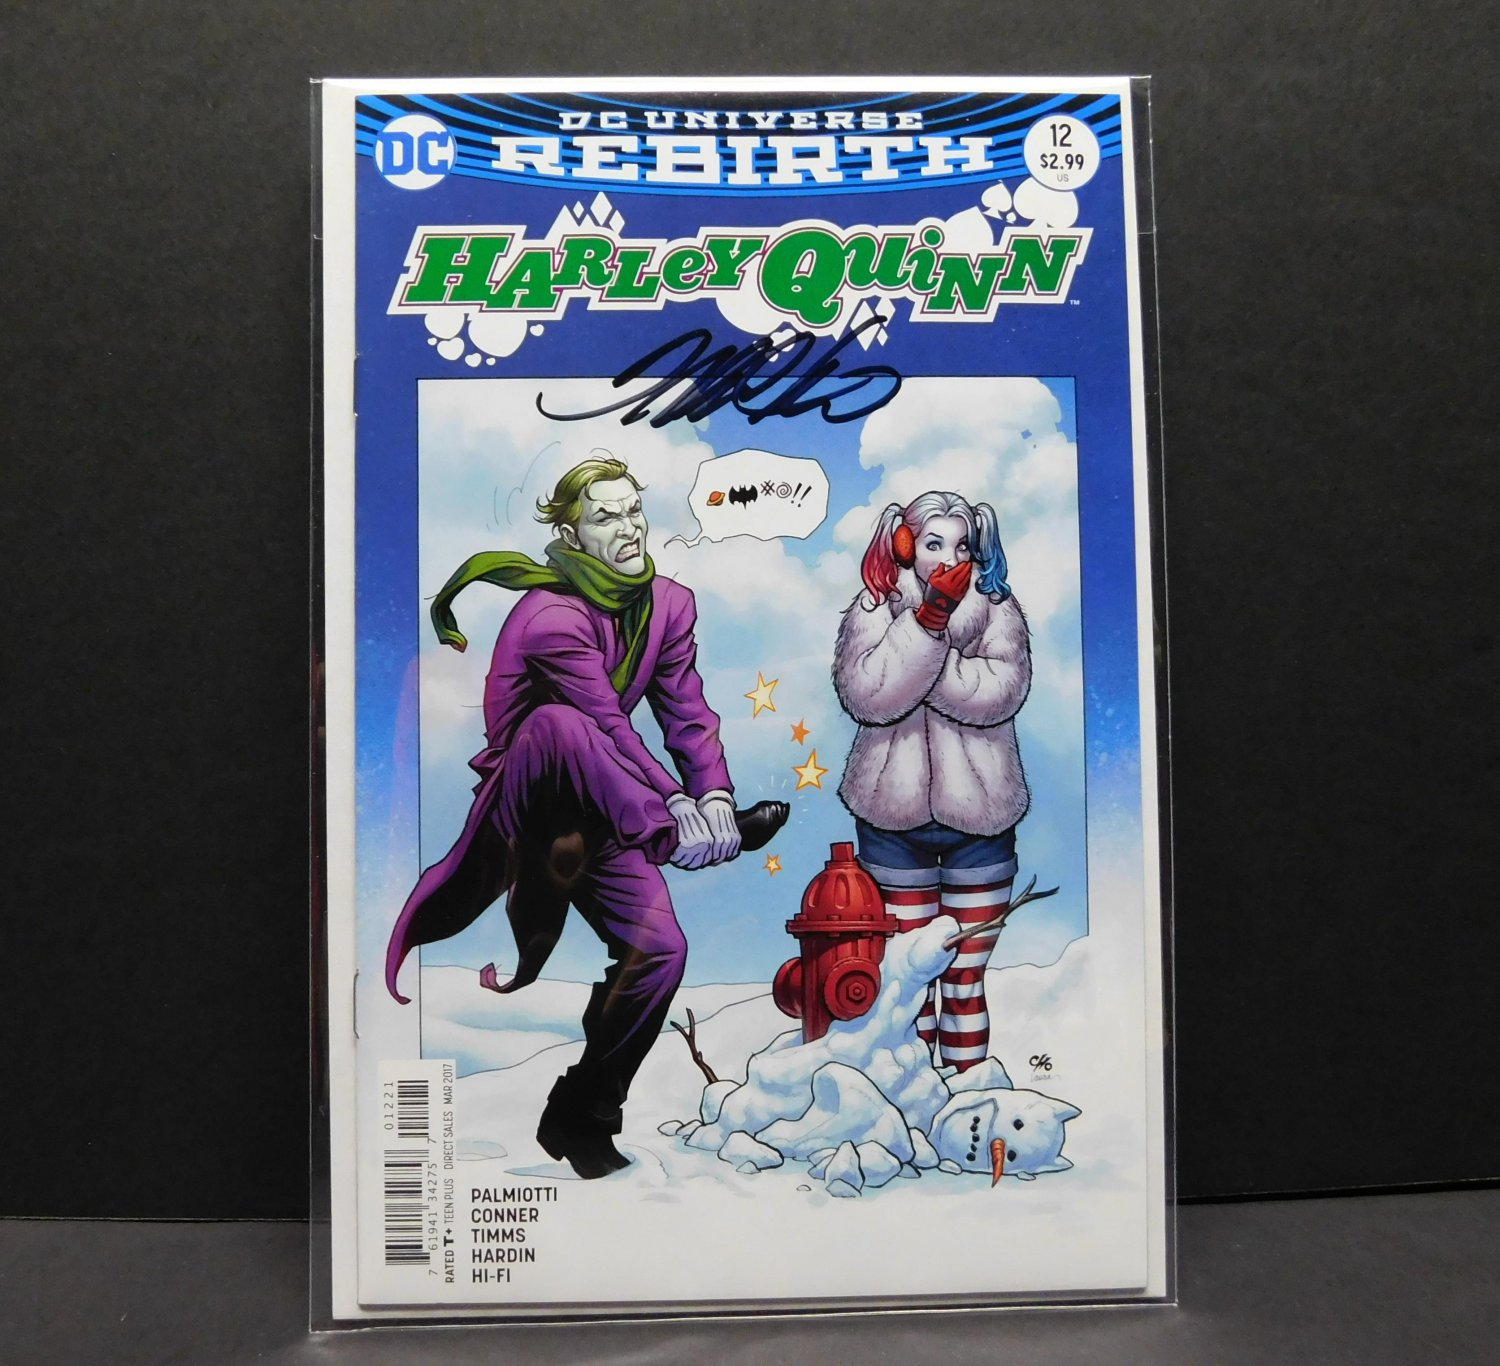 HARLEY QUINN #12b NM - DC Comics Rebirth - Variant Signed by Frank Cho